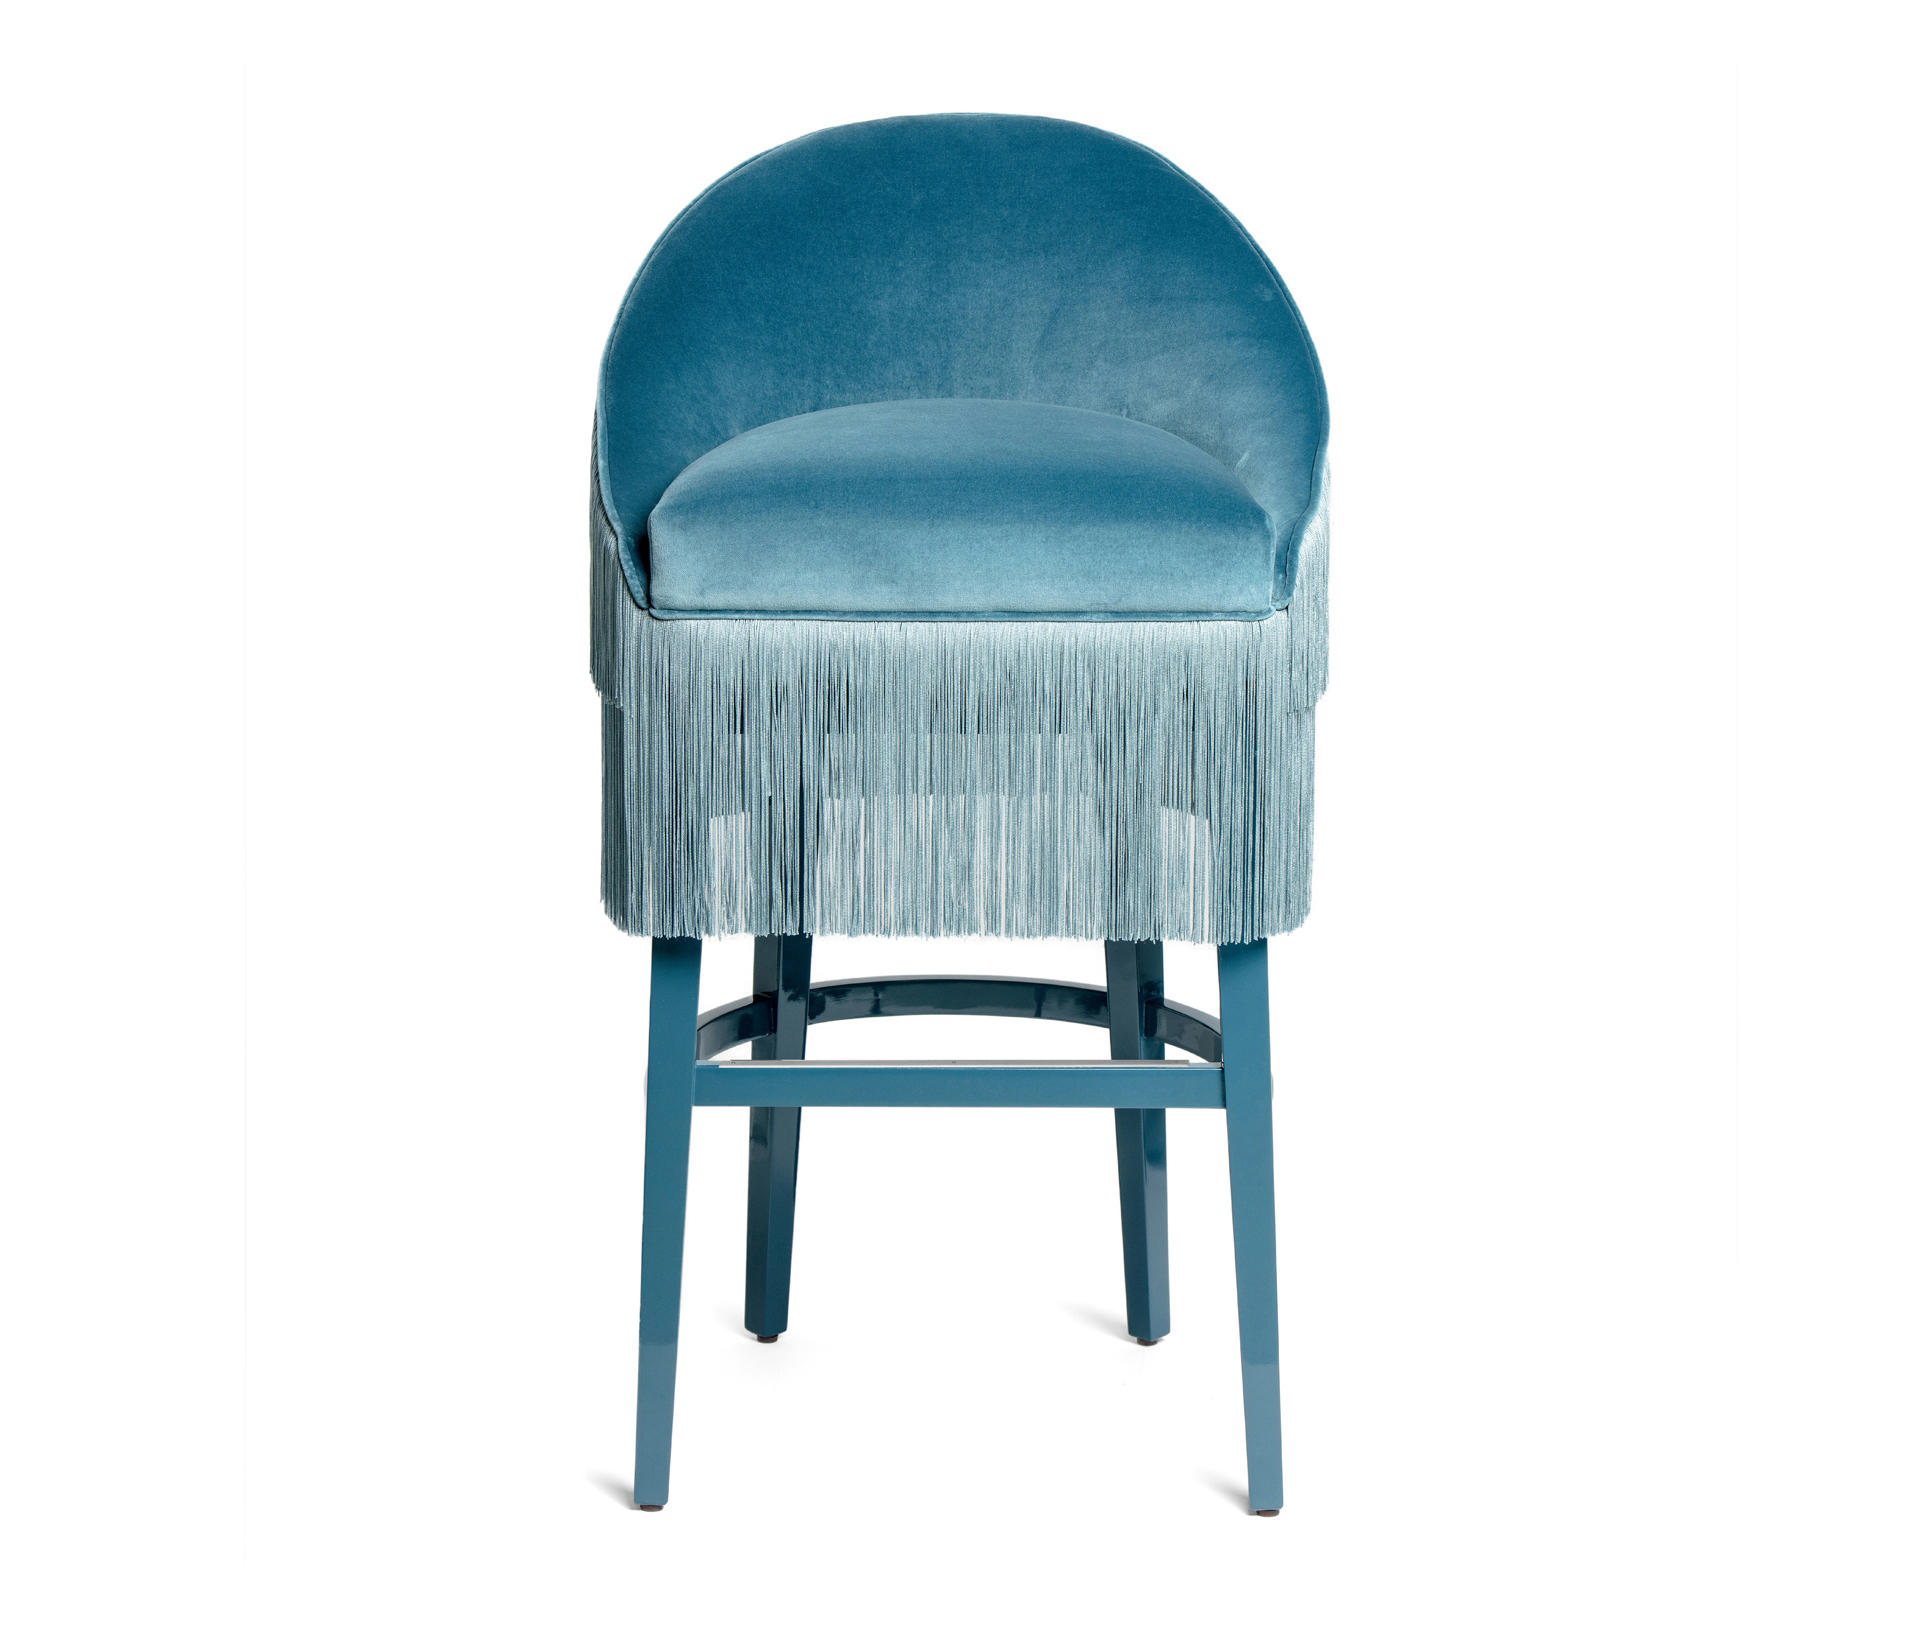 Fringes Seating Collection by MUNNA